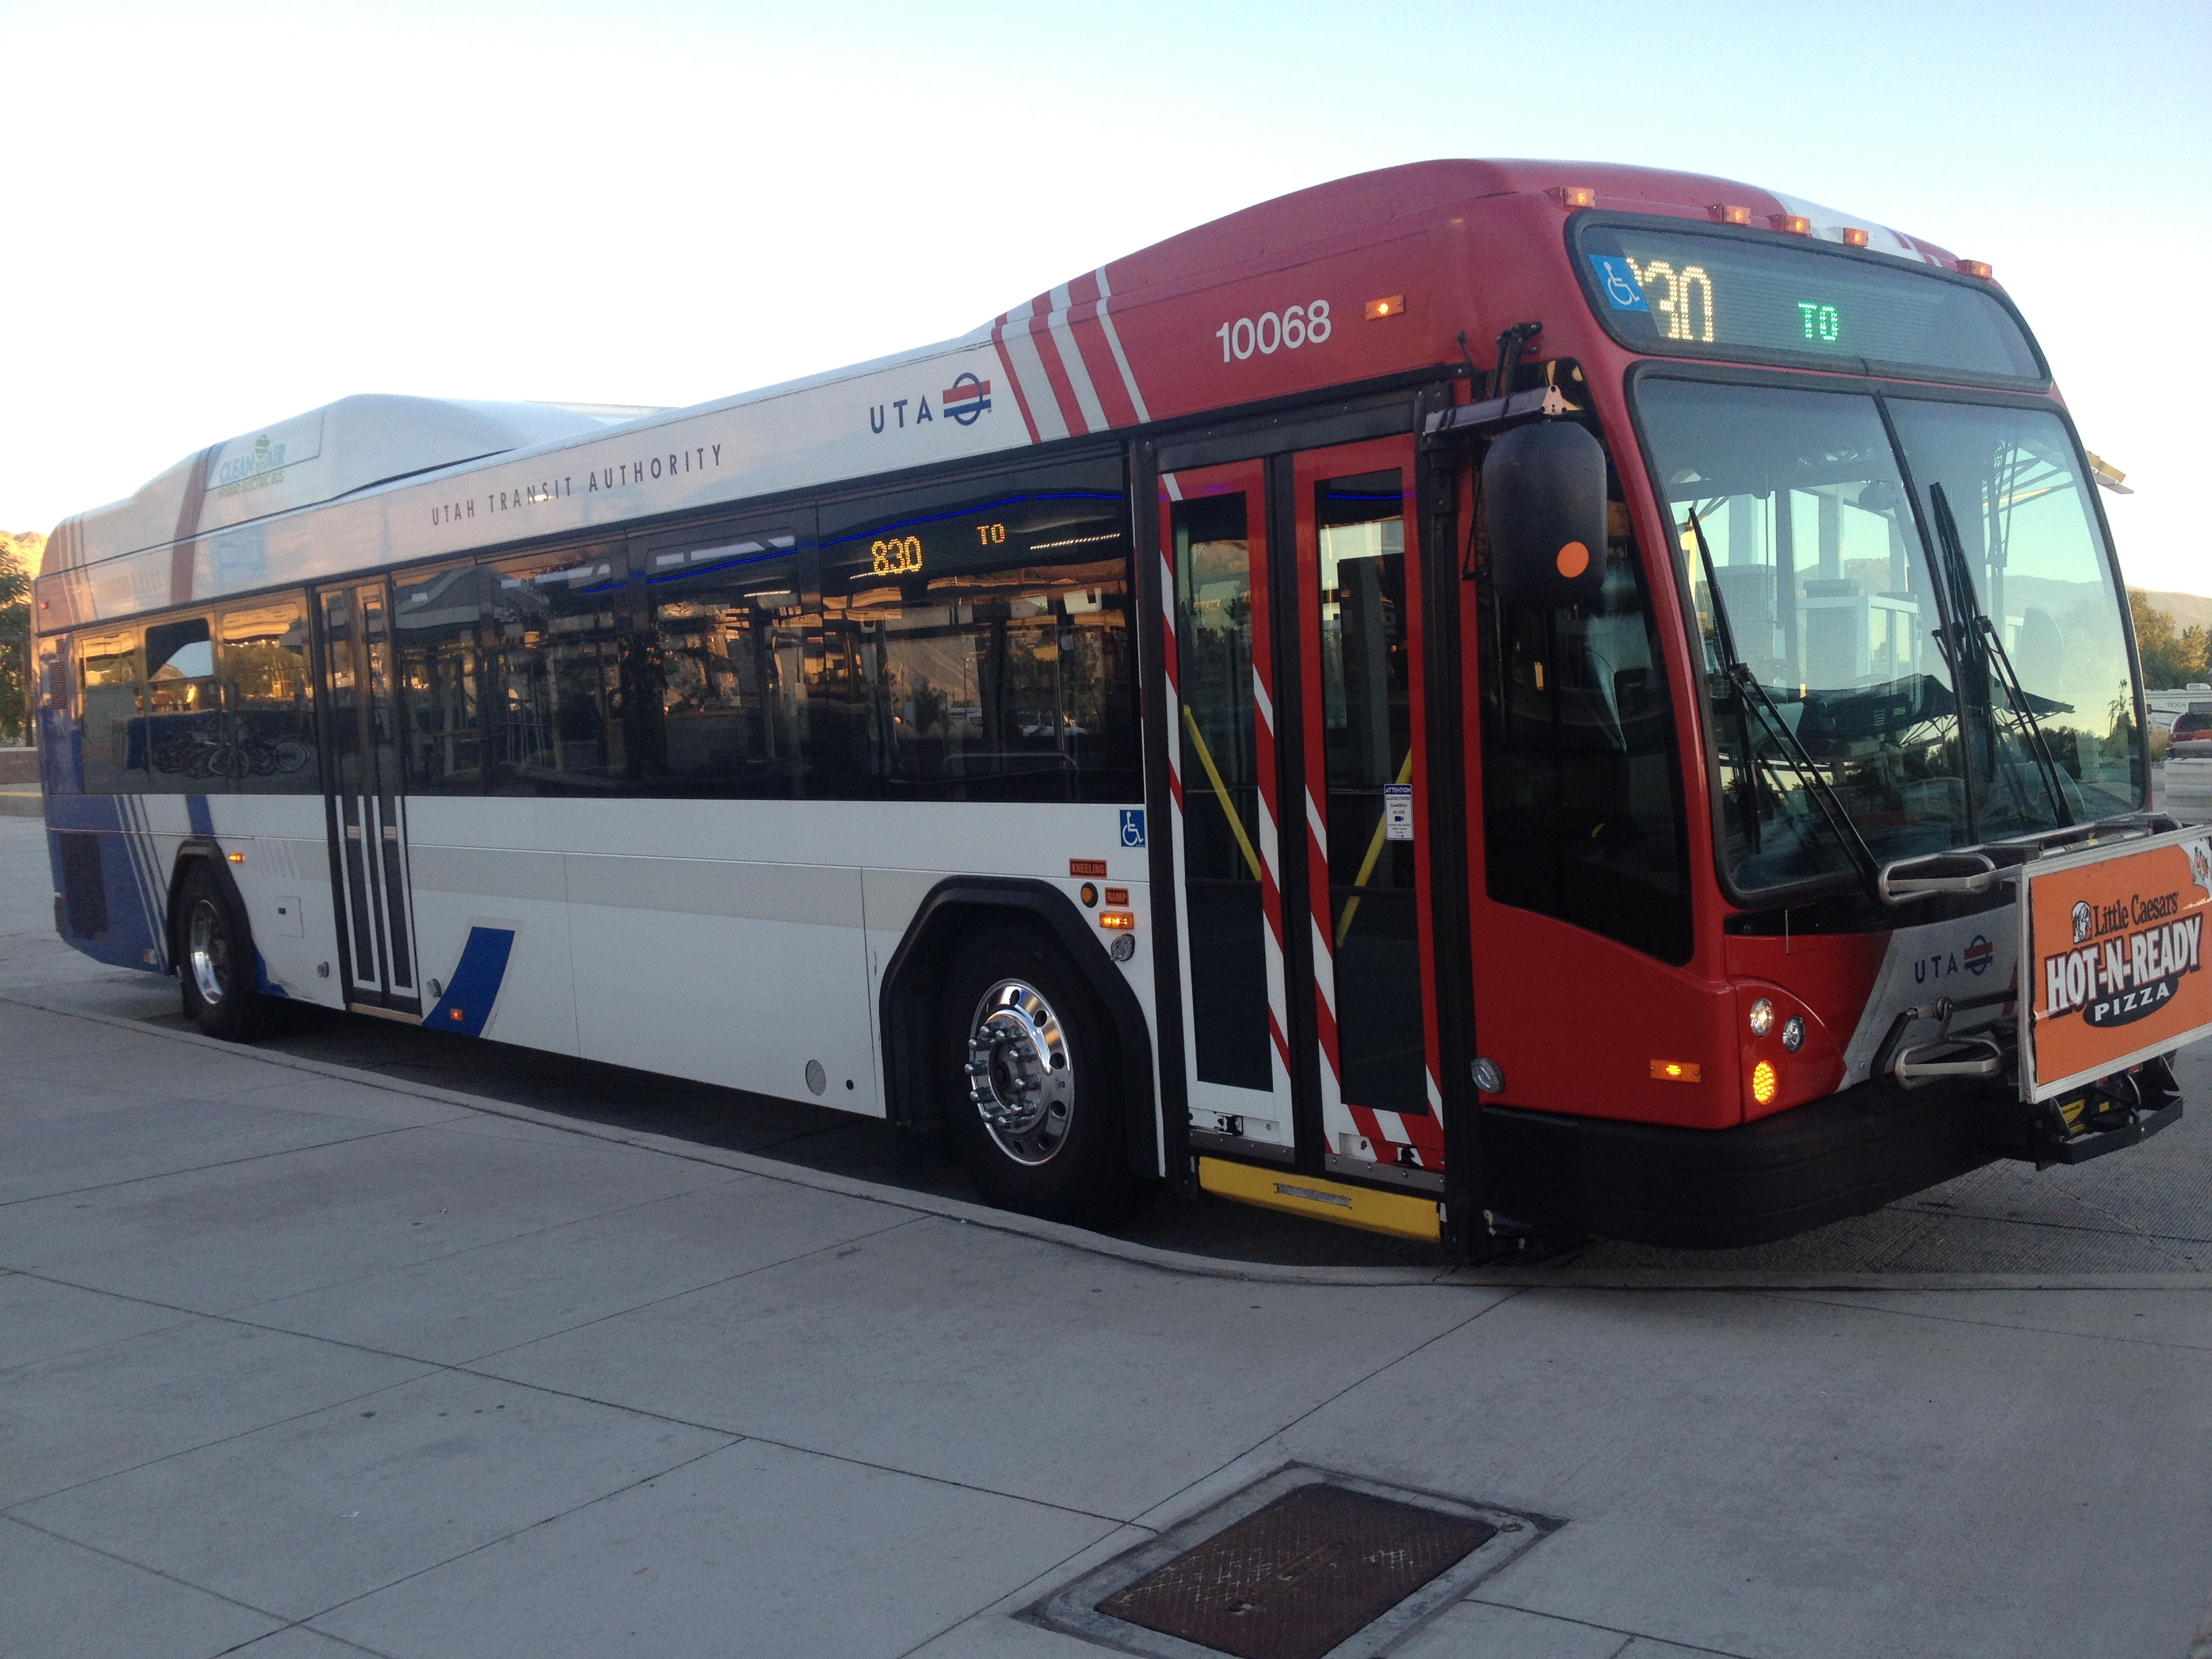 UTA providing convenient bus service to Provo City Center